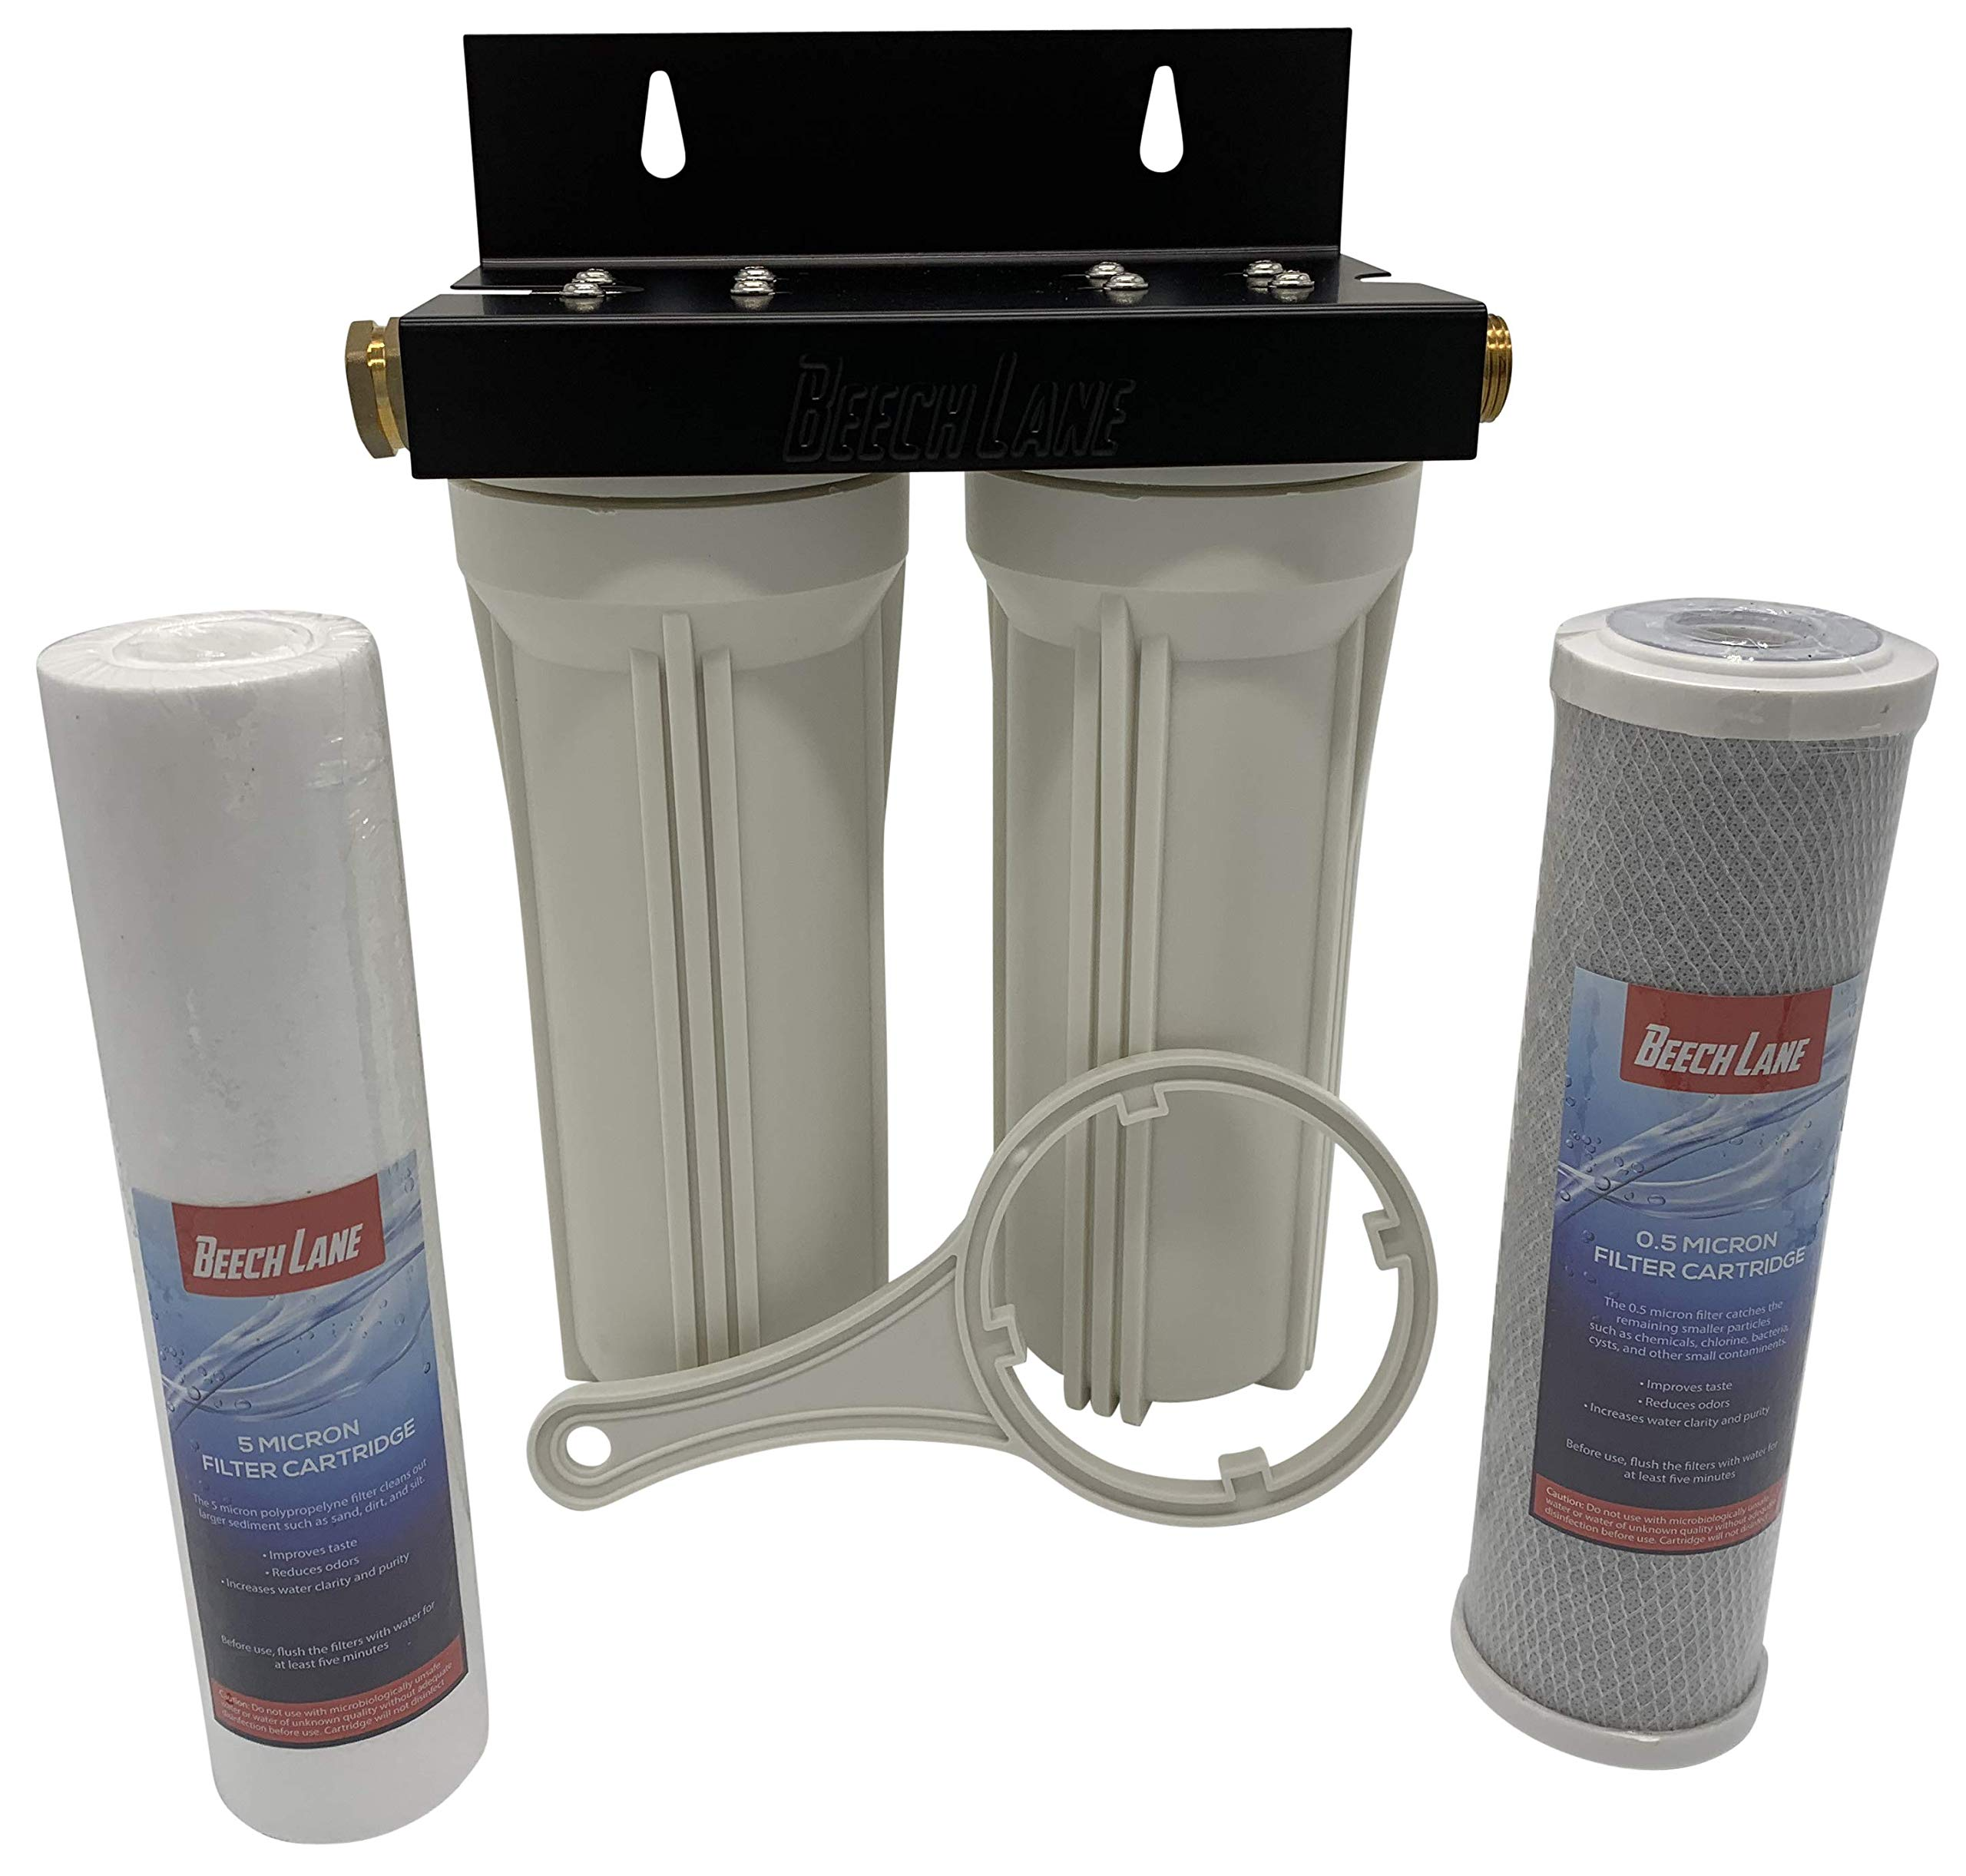 Beech Lane External RV Dual Water Filter System, Leak-Free Brass Fittings, Mounting Bracket and Two Filters Included, Sturdy Construction is Built to Last by Beech Lane